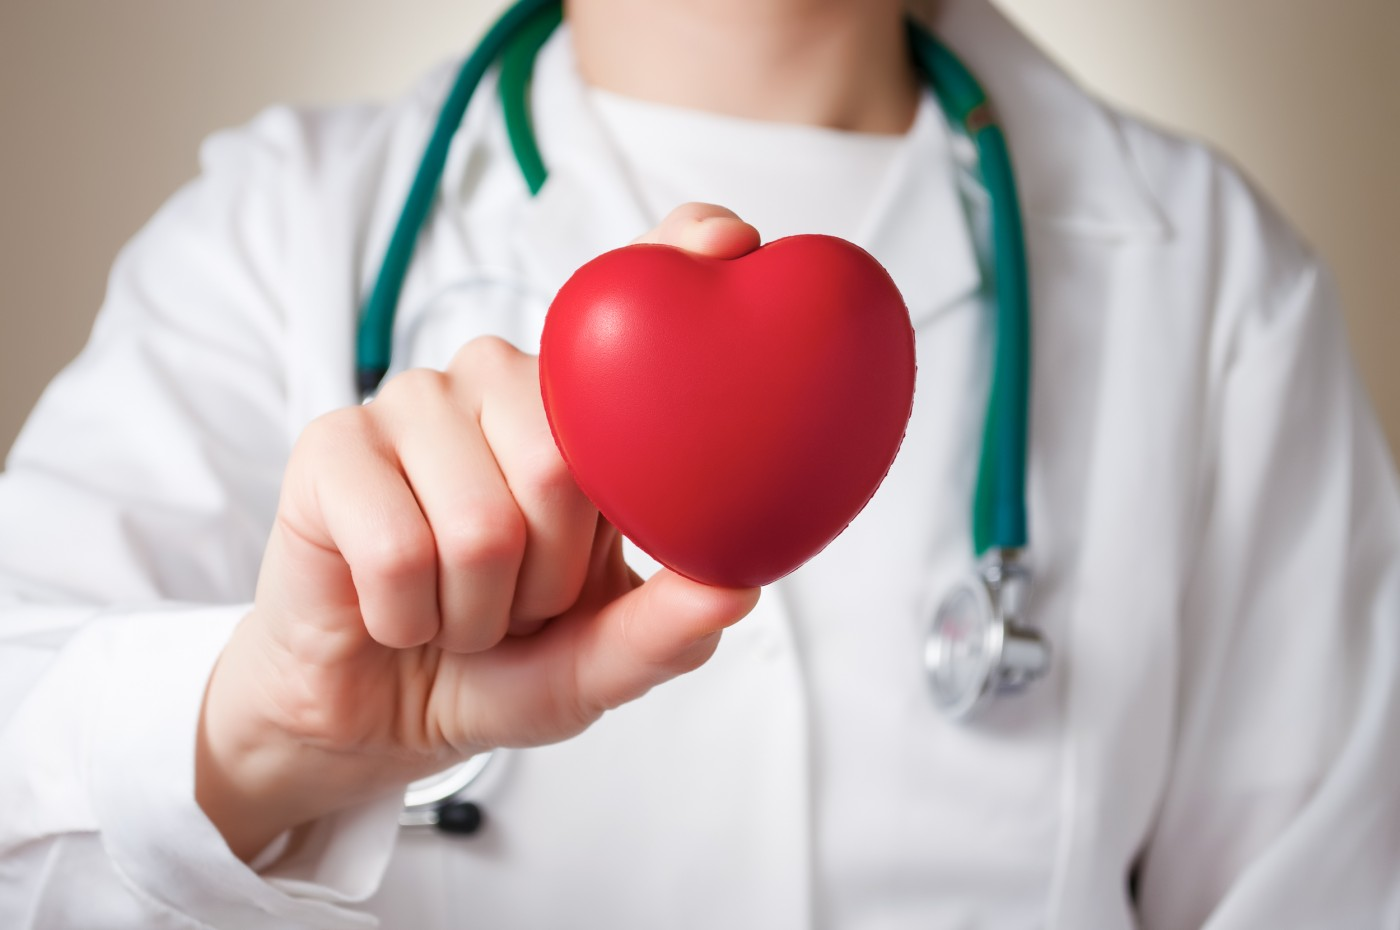 Researchers Report Lipid Resolvin D1 Can Reduce Heart Failure Risk After a Heart Attack